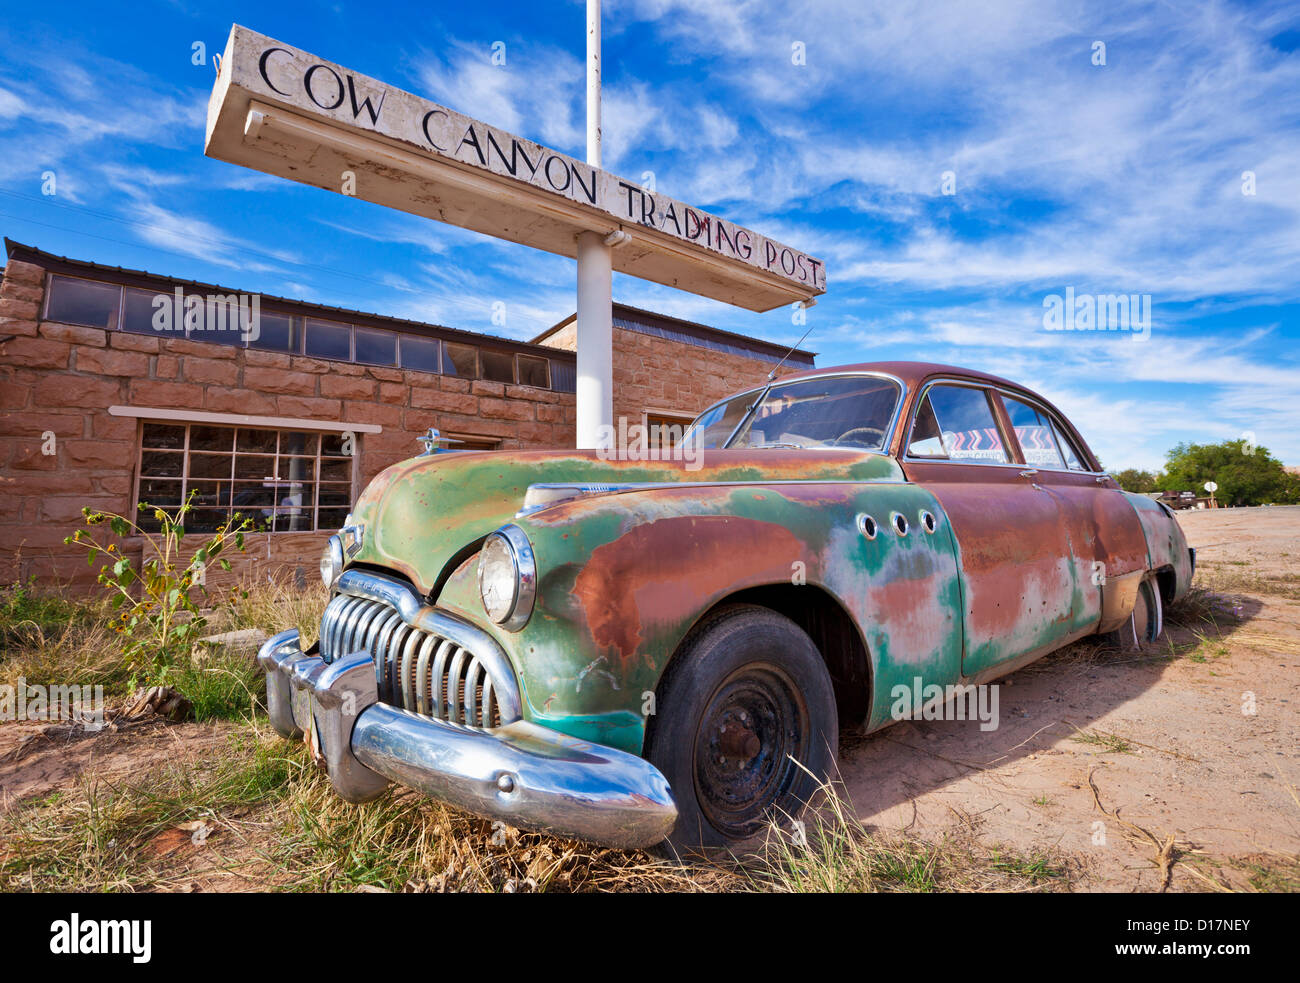 Rusty Old American Car Stock Photos & Rusty Old American Car Stock ...